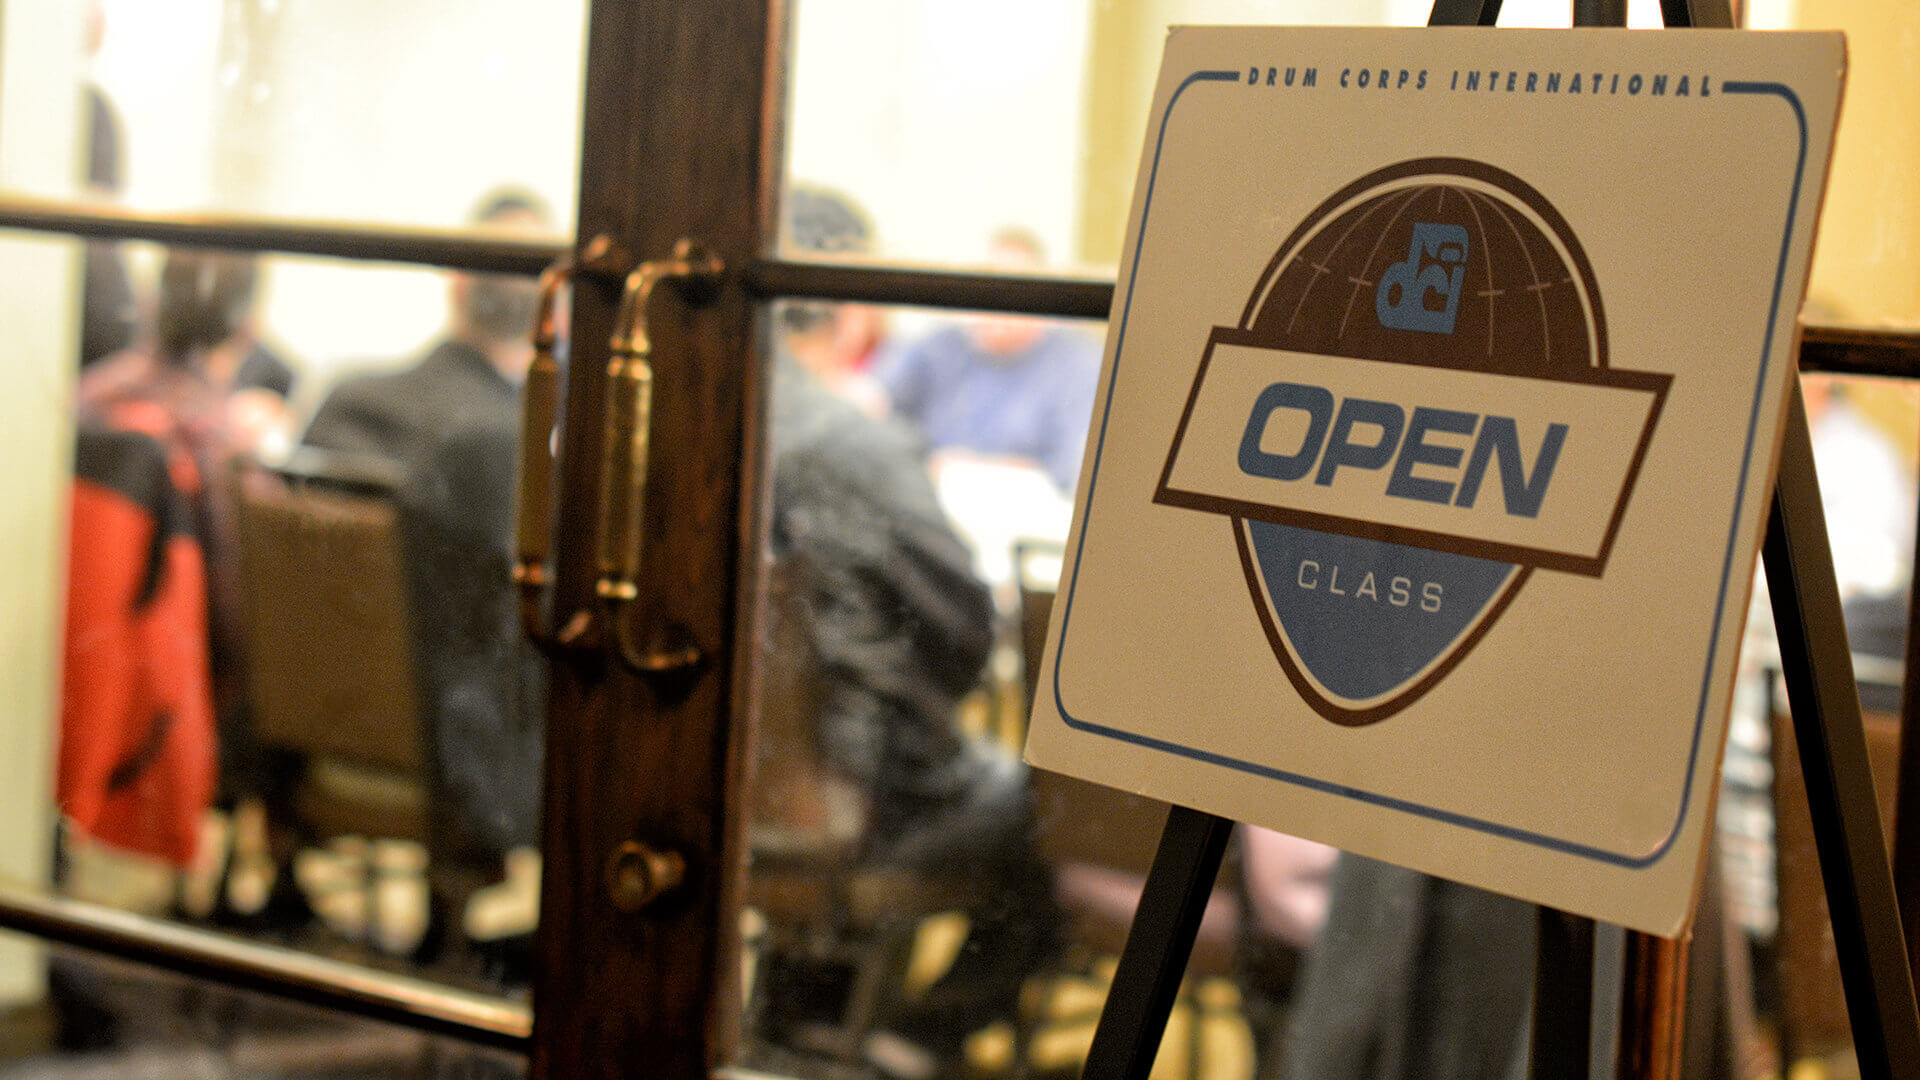 Open Class anticipates continued growth